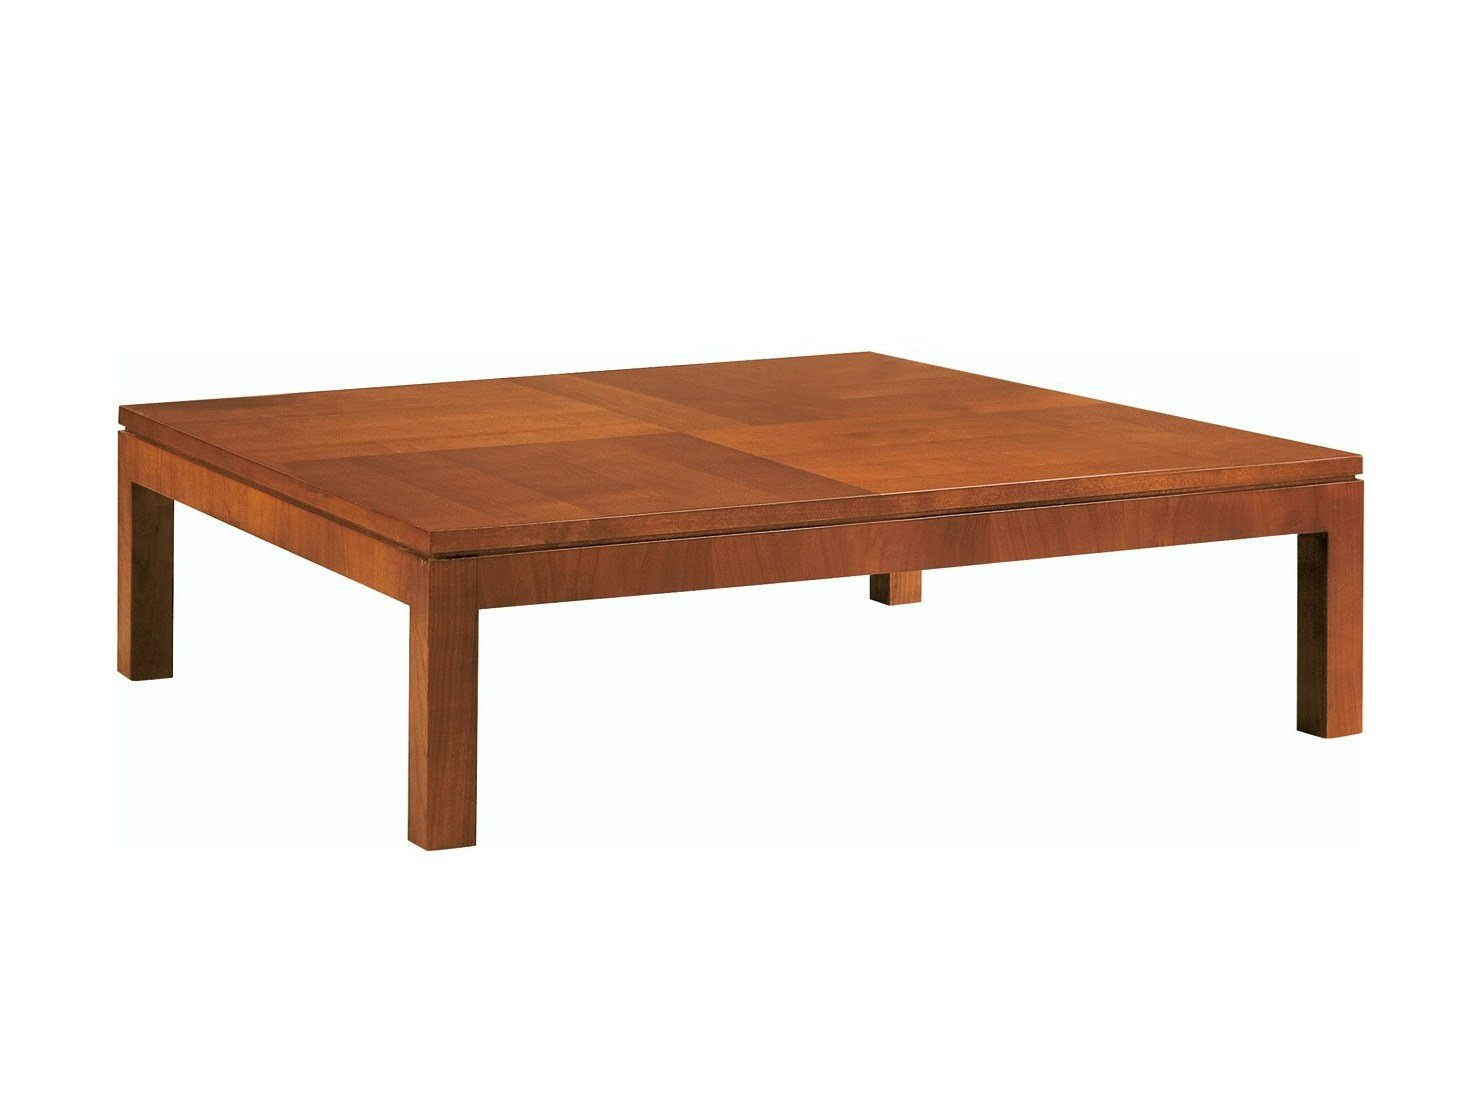 Cherry wood coffee table bob by morelato design centro ricerche maam Coffee table cherry